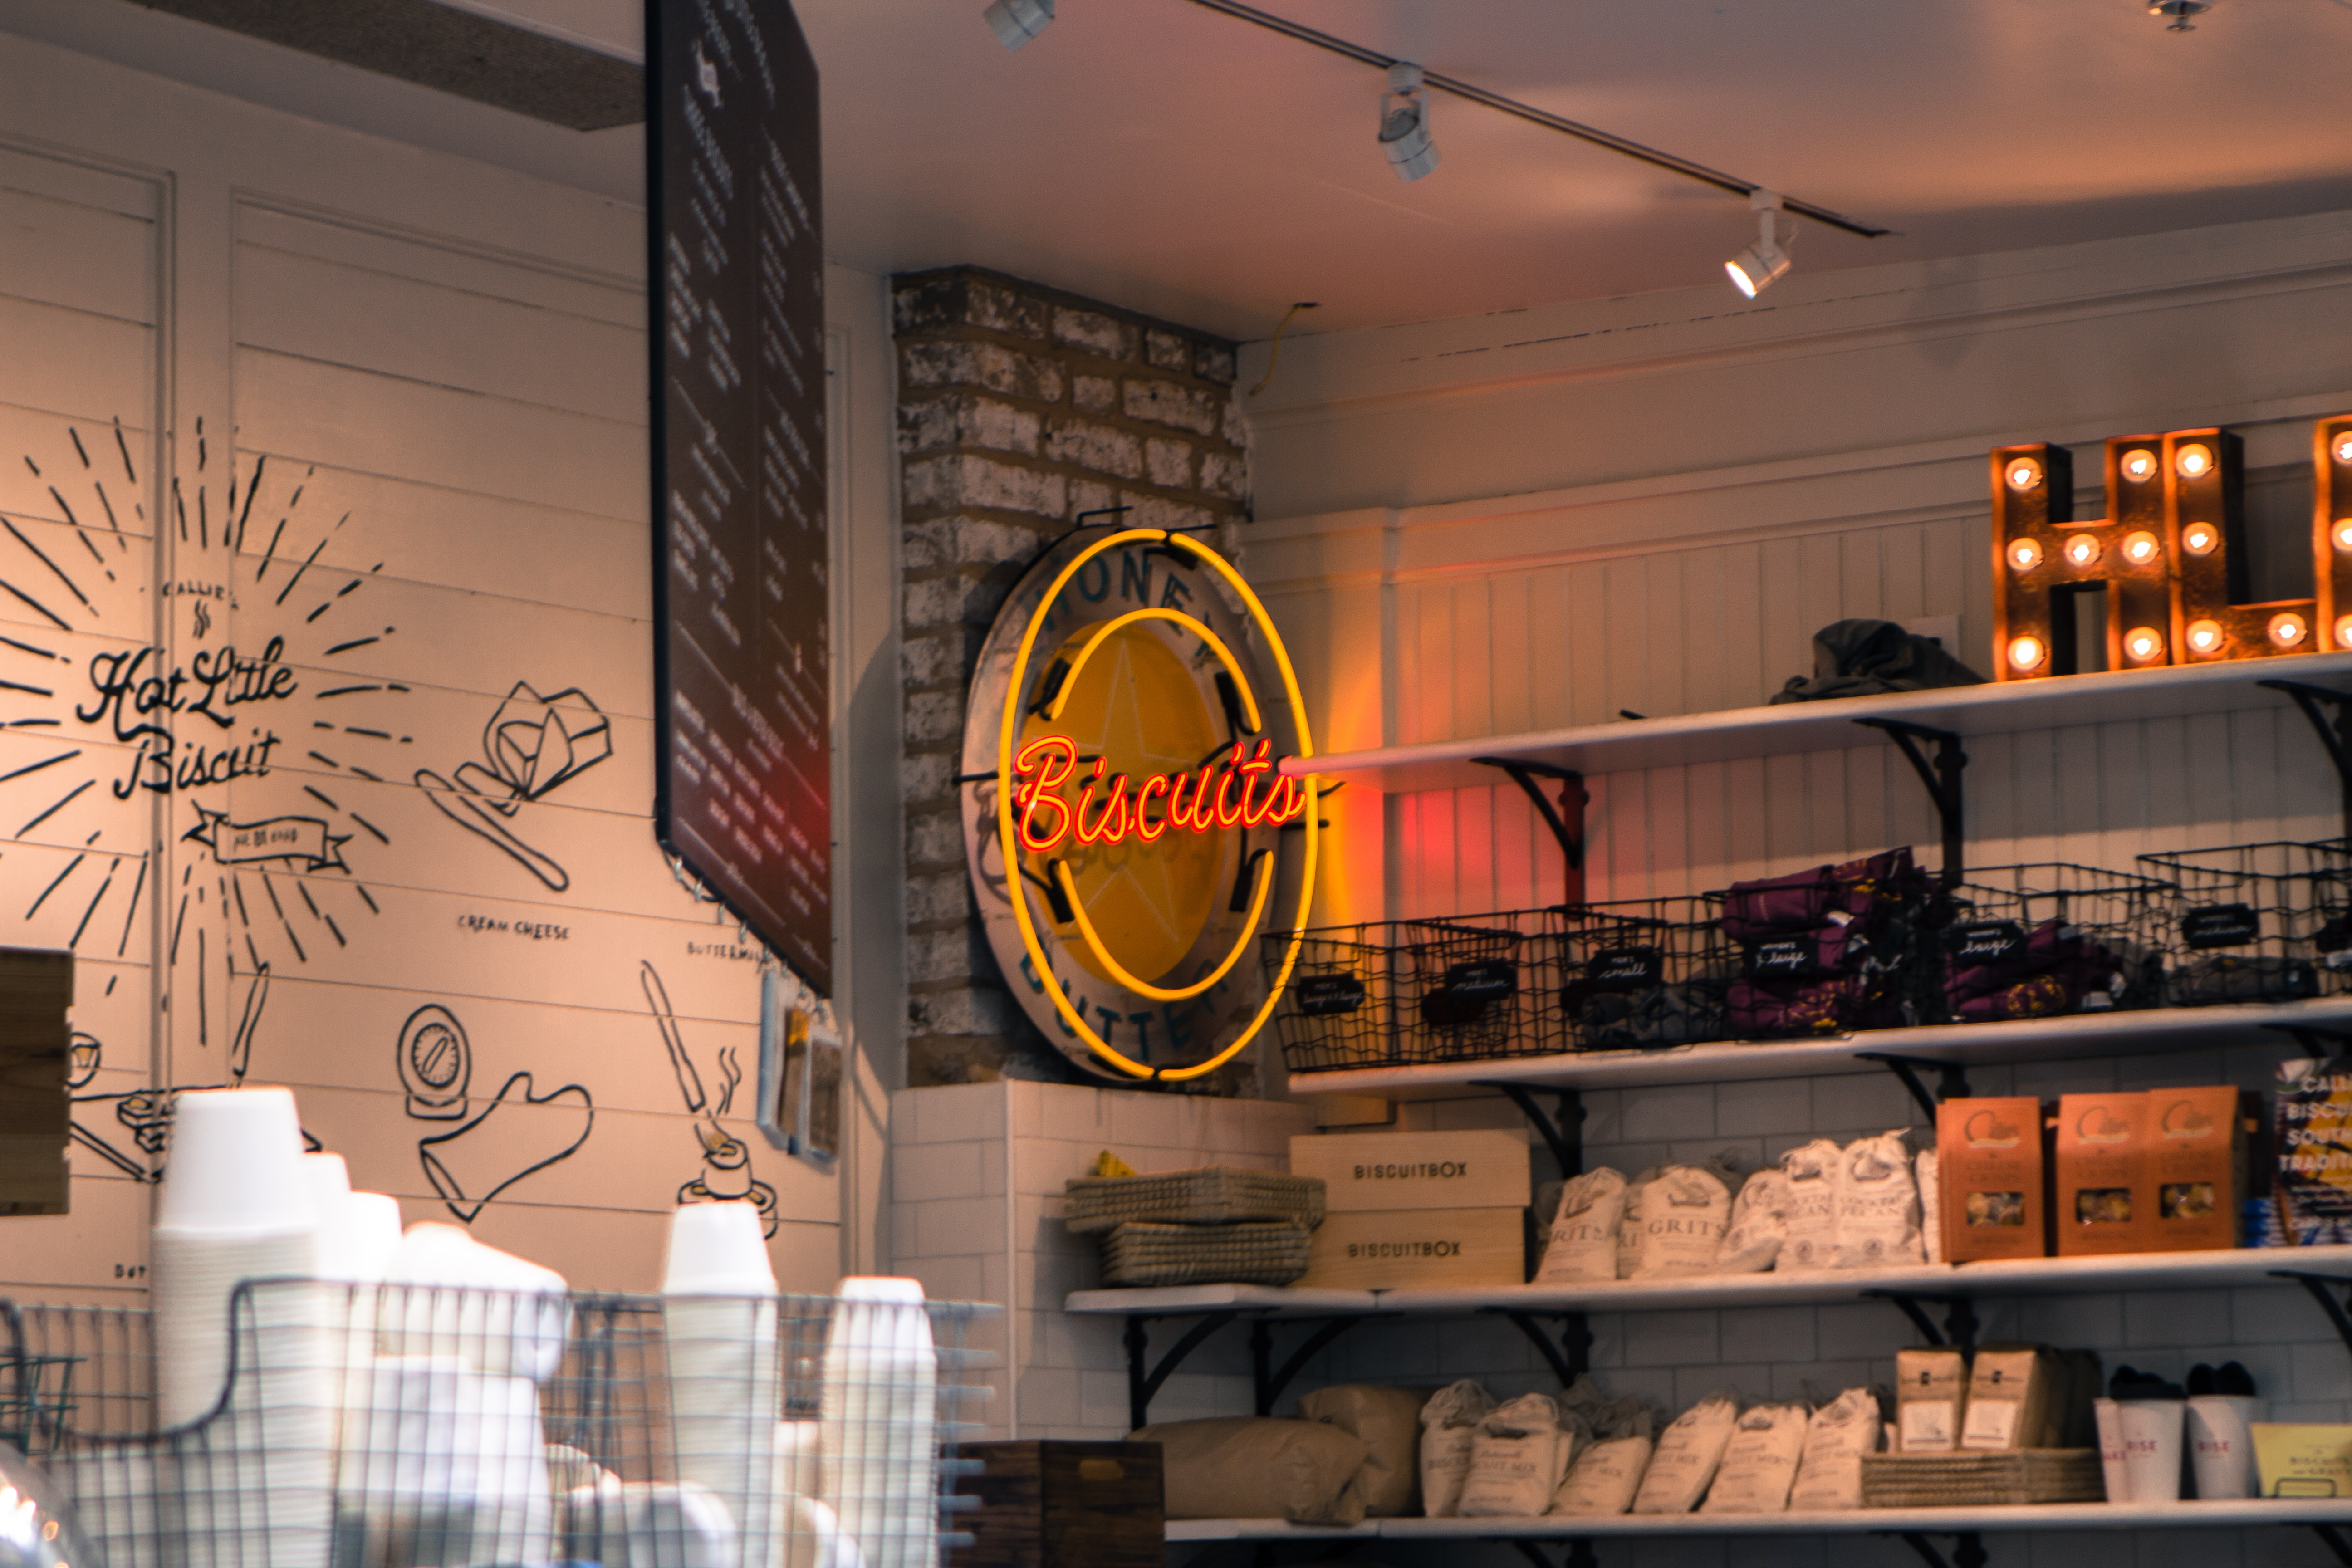 red and yellow Biscuits neon light signage hanged on gray brick wall